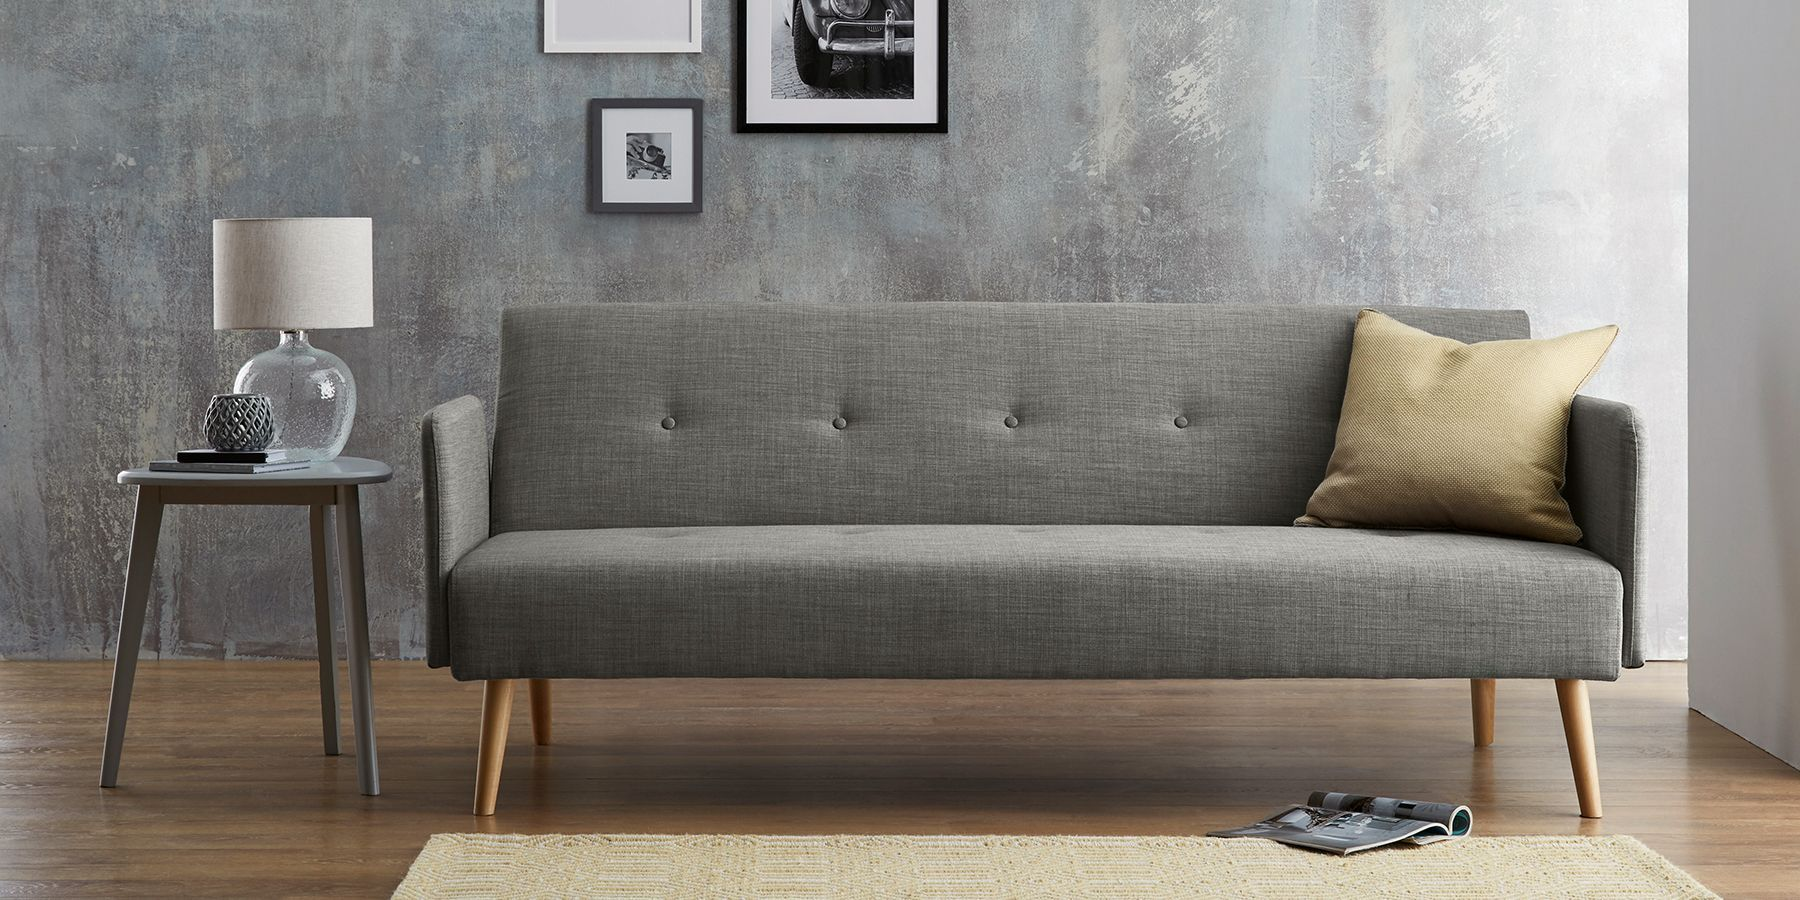 Buy Finnley Occasional Sofa Bed Large 2 People Simple